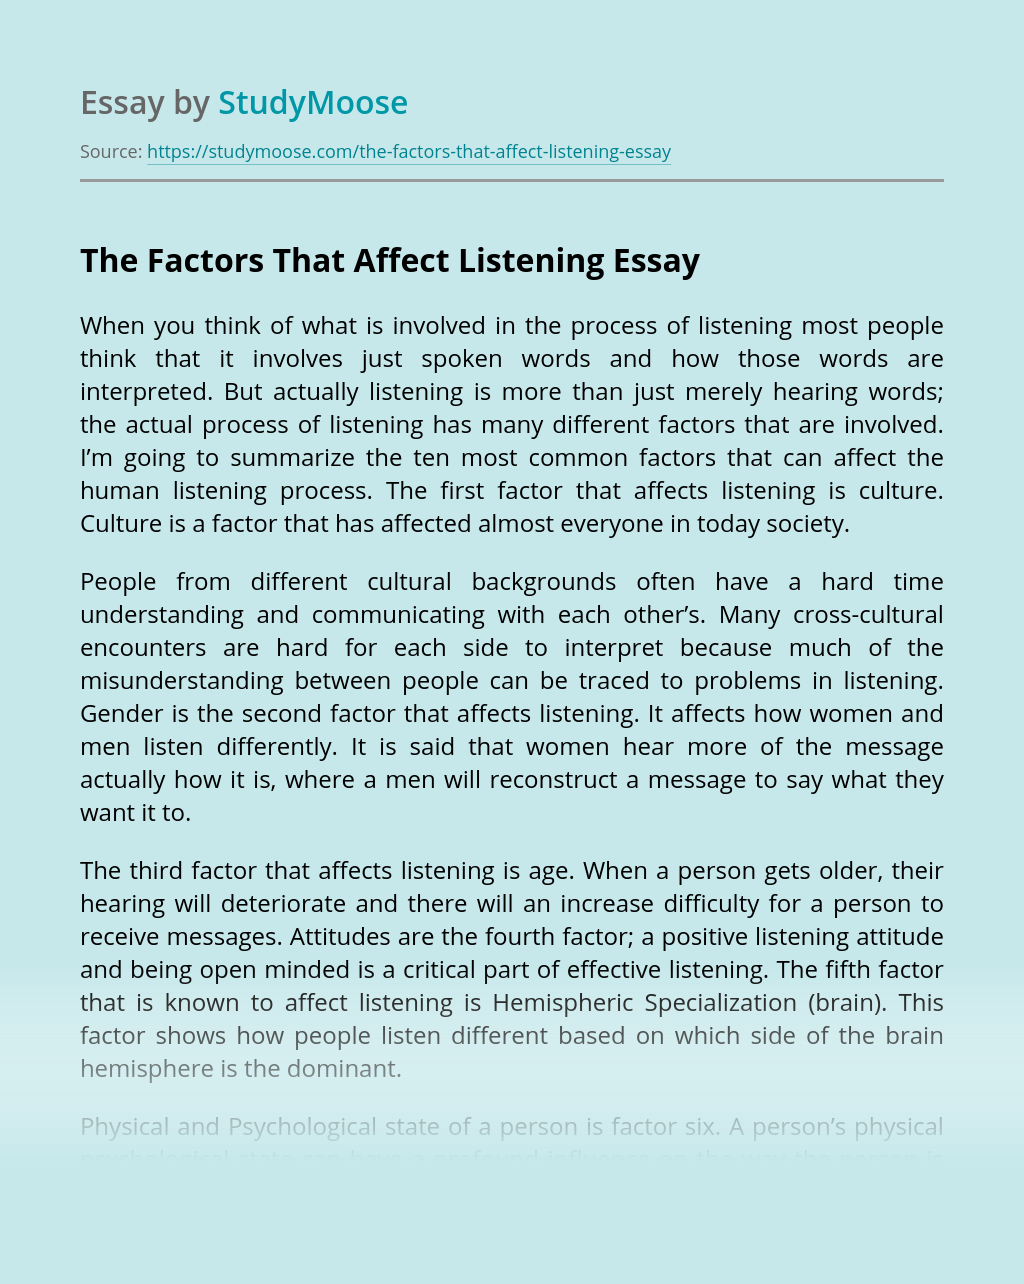 The Factors That Affect Listening